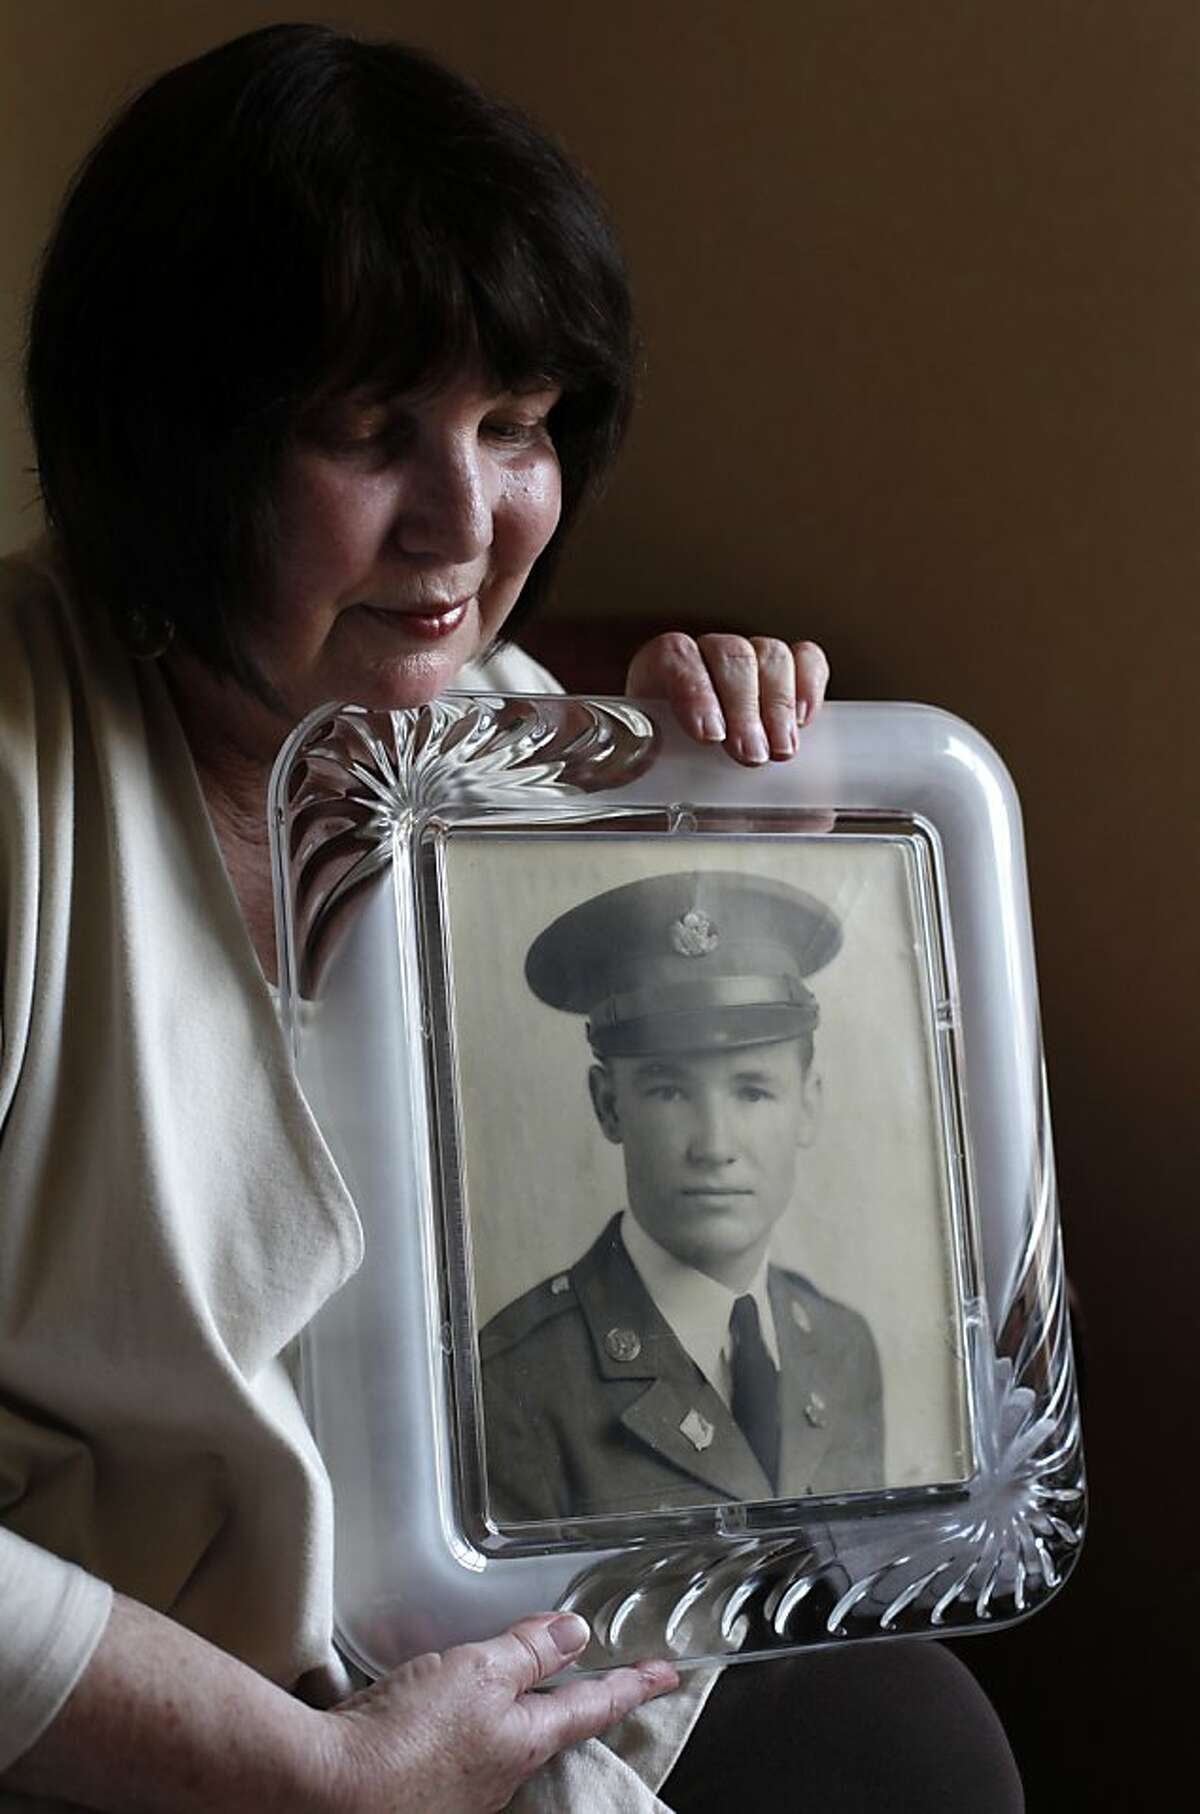 Betty Wheeler, of Citrus Heights, holds a photo of her father, Elbert Pollard, in San Francisco, Calif. Thursday, May 24, 2012. Pollard was a 28-year-old Air Force gunner in 1950 when he died parachuting out of a B-36. His remains were finally identified by DNA this year, and Friday they will be laid to rest in the Presidio.